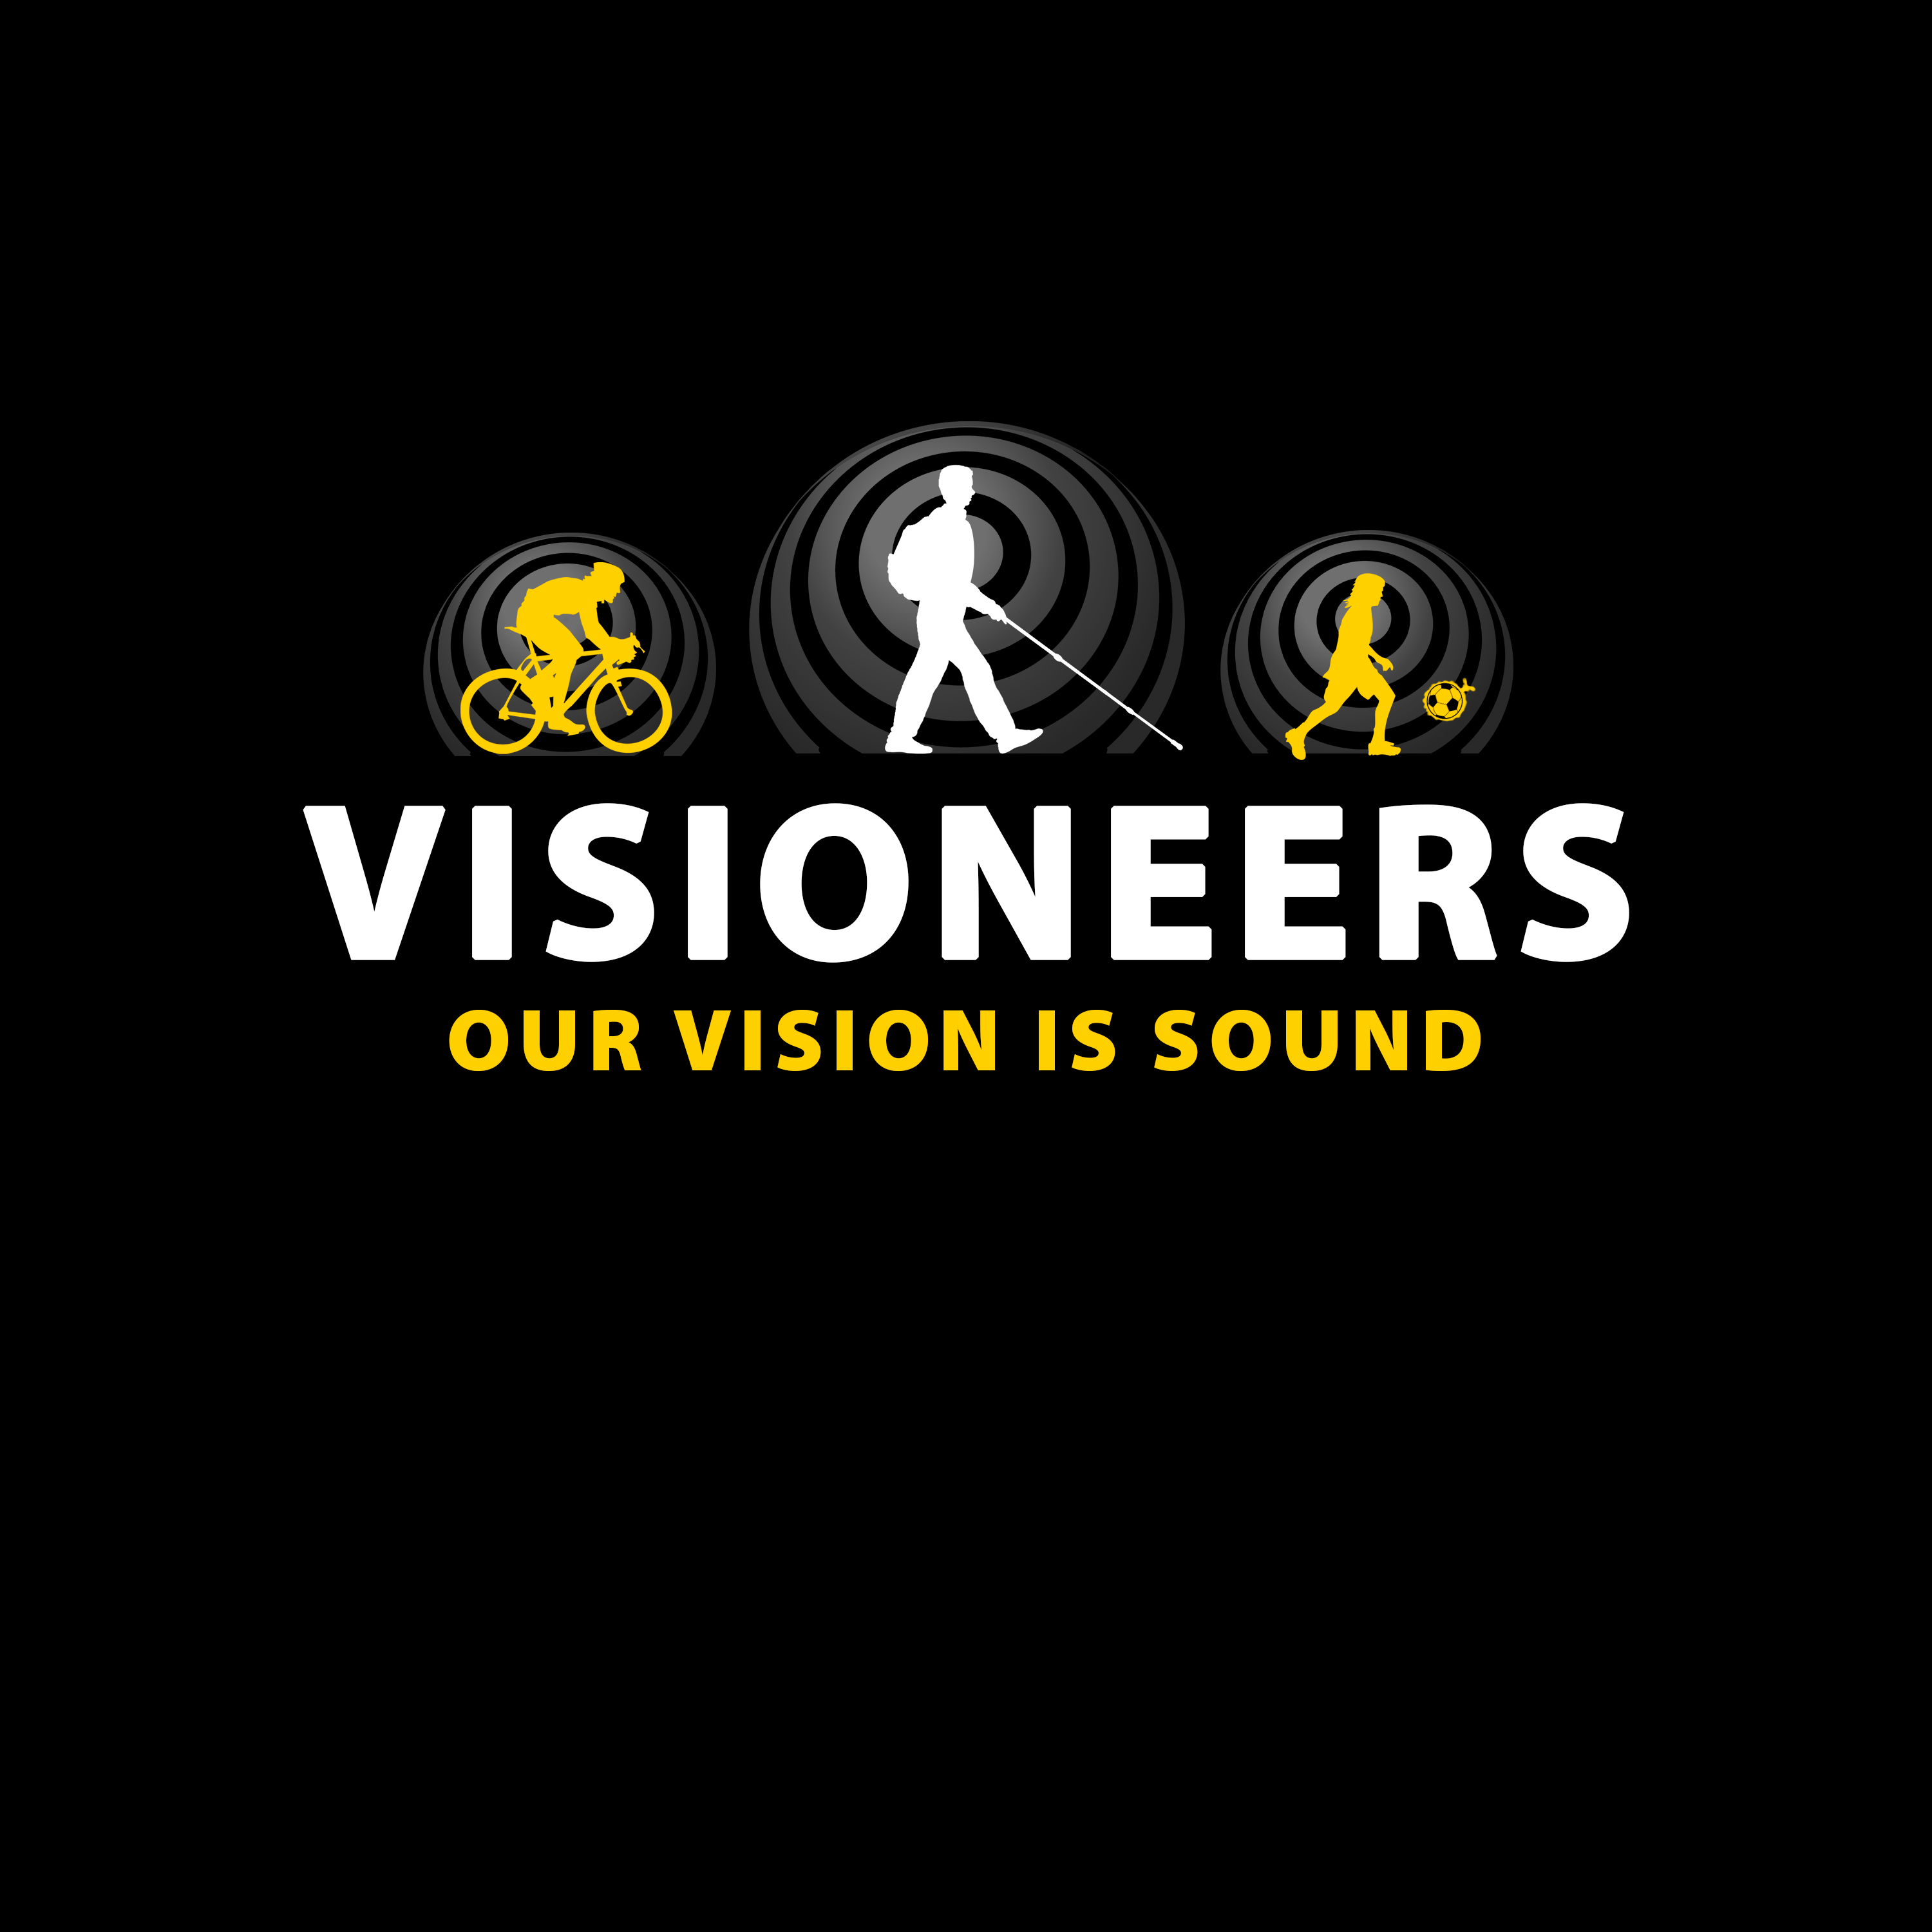 Visioneers 6. Same as previous panel but with white Daniel silhouette.